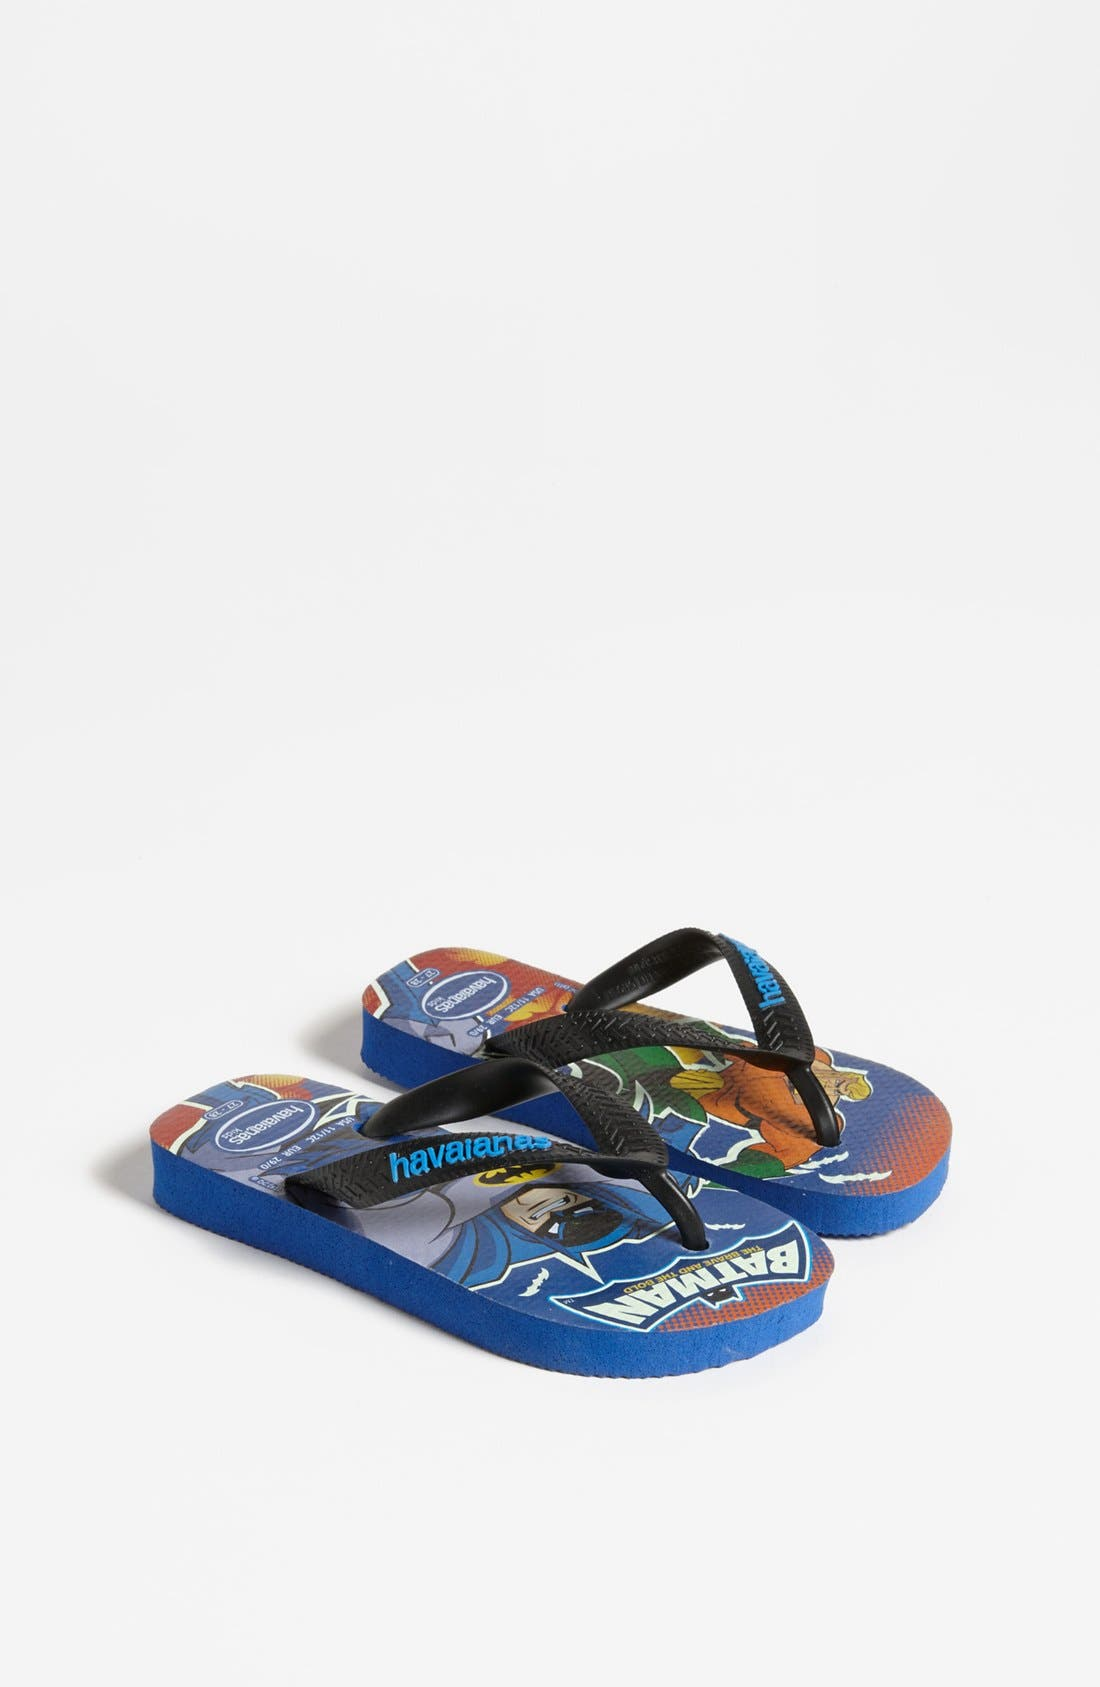 Alternate Image 1 Selected - Havaianas 'Kids Heroes' Flip Flop (Toddler & Little Kid)